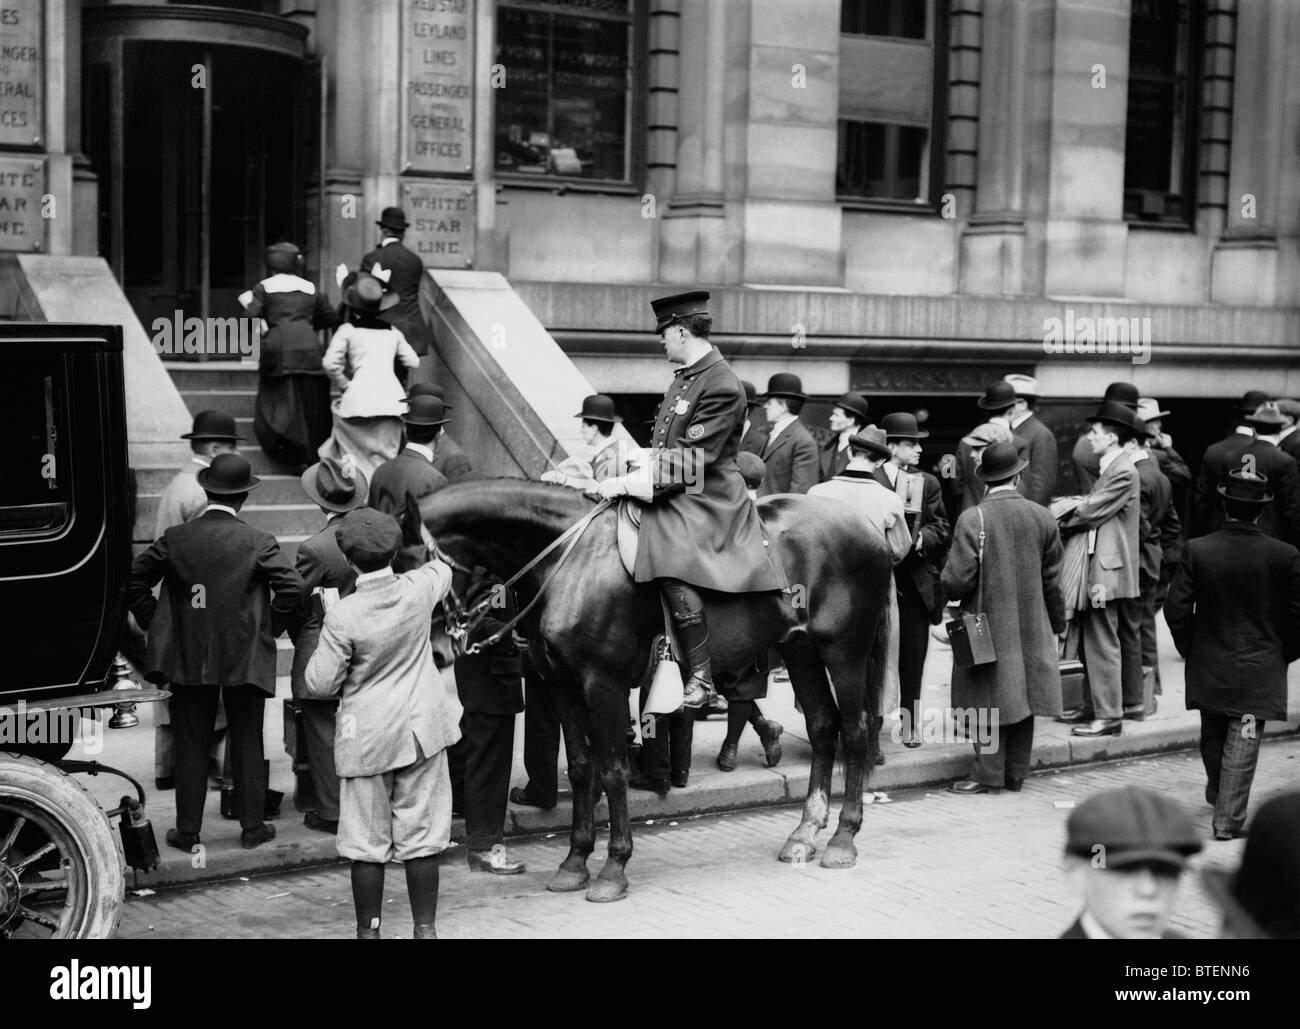 A policeman patrols outside the White Star Line offices in New York as crowds gather following the Titanic disaster - Stock Image